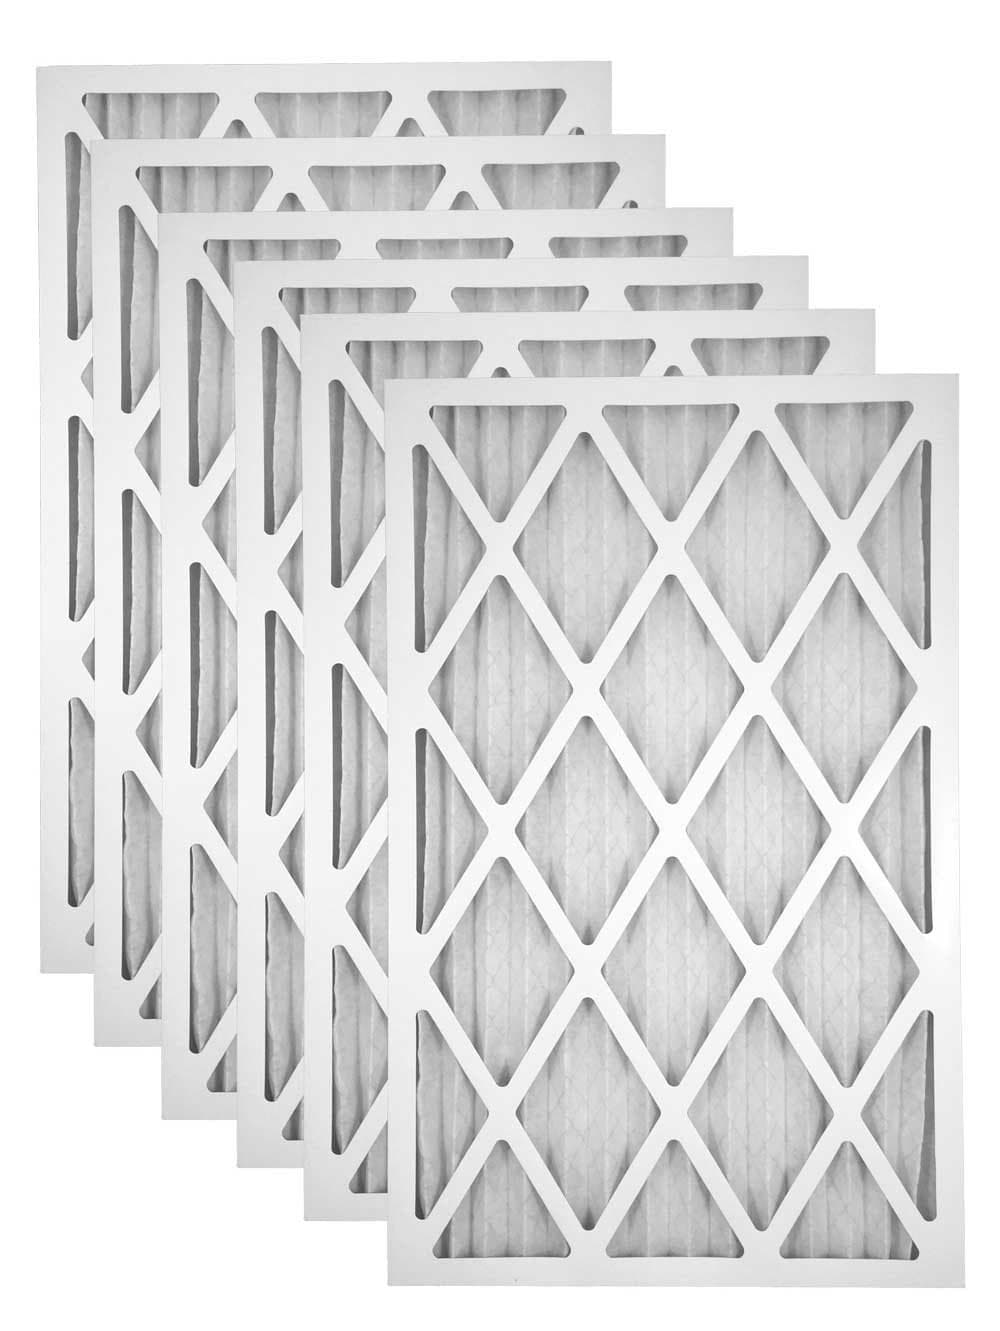 10x30x1 Merv 11 AC Furnace Filter - Case of 6